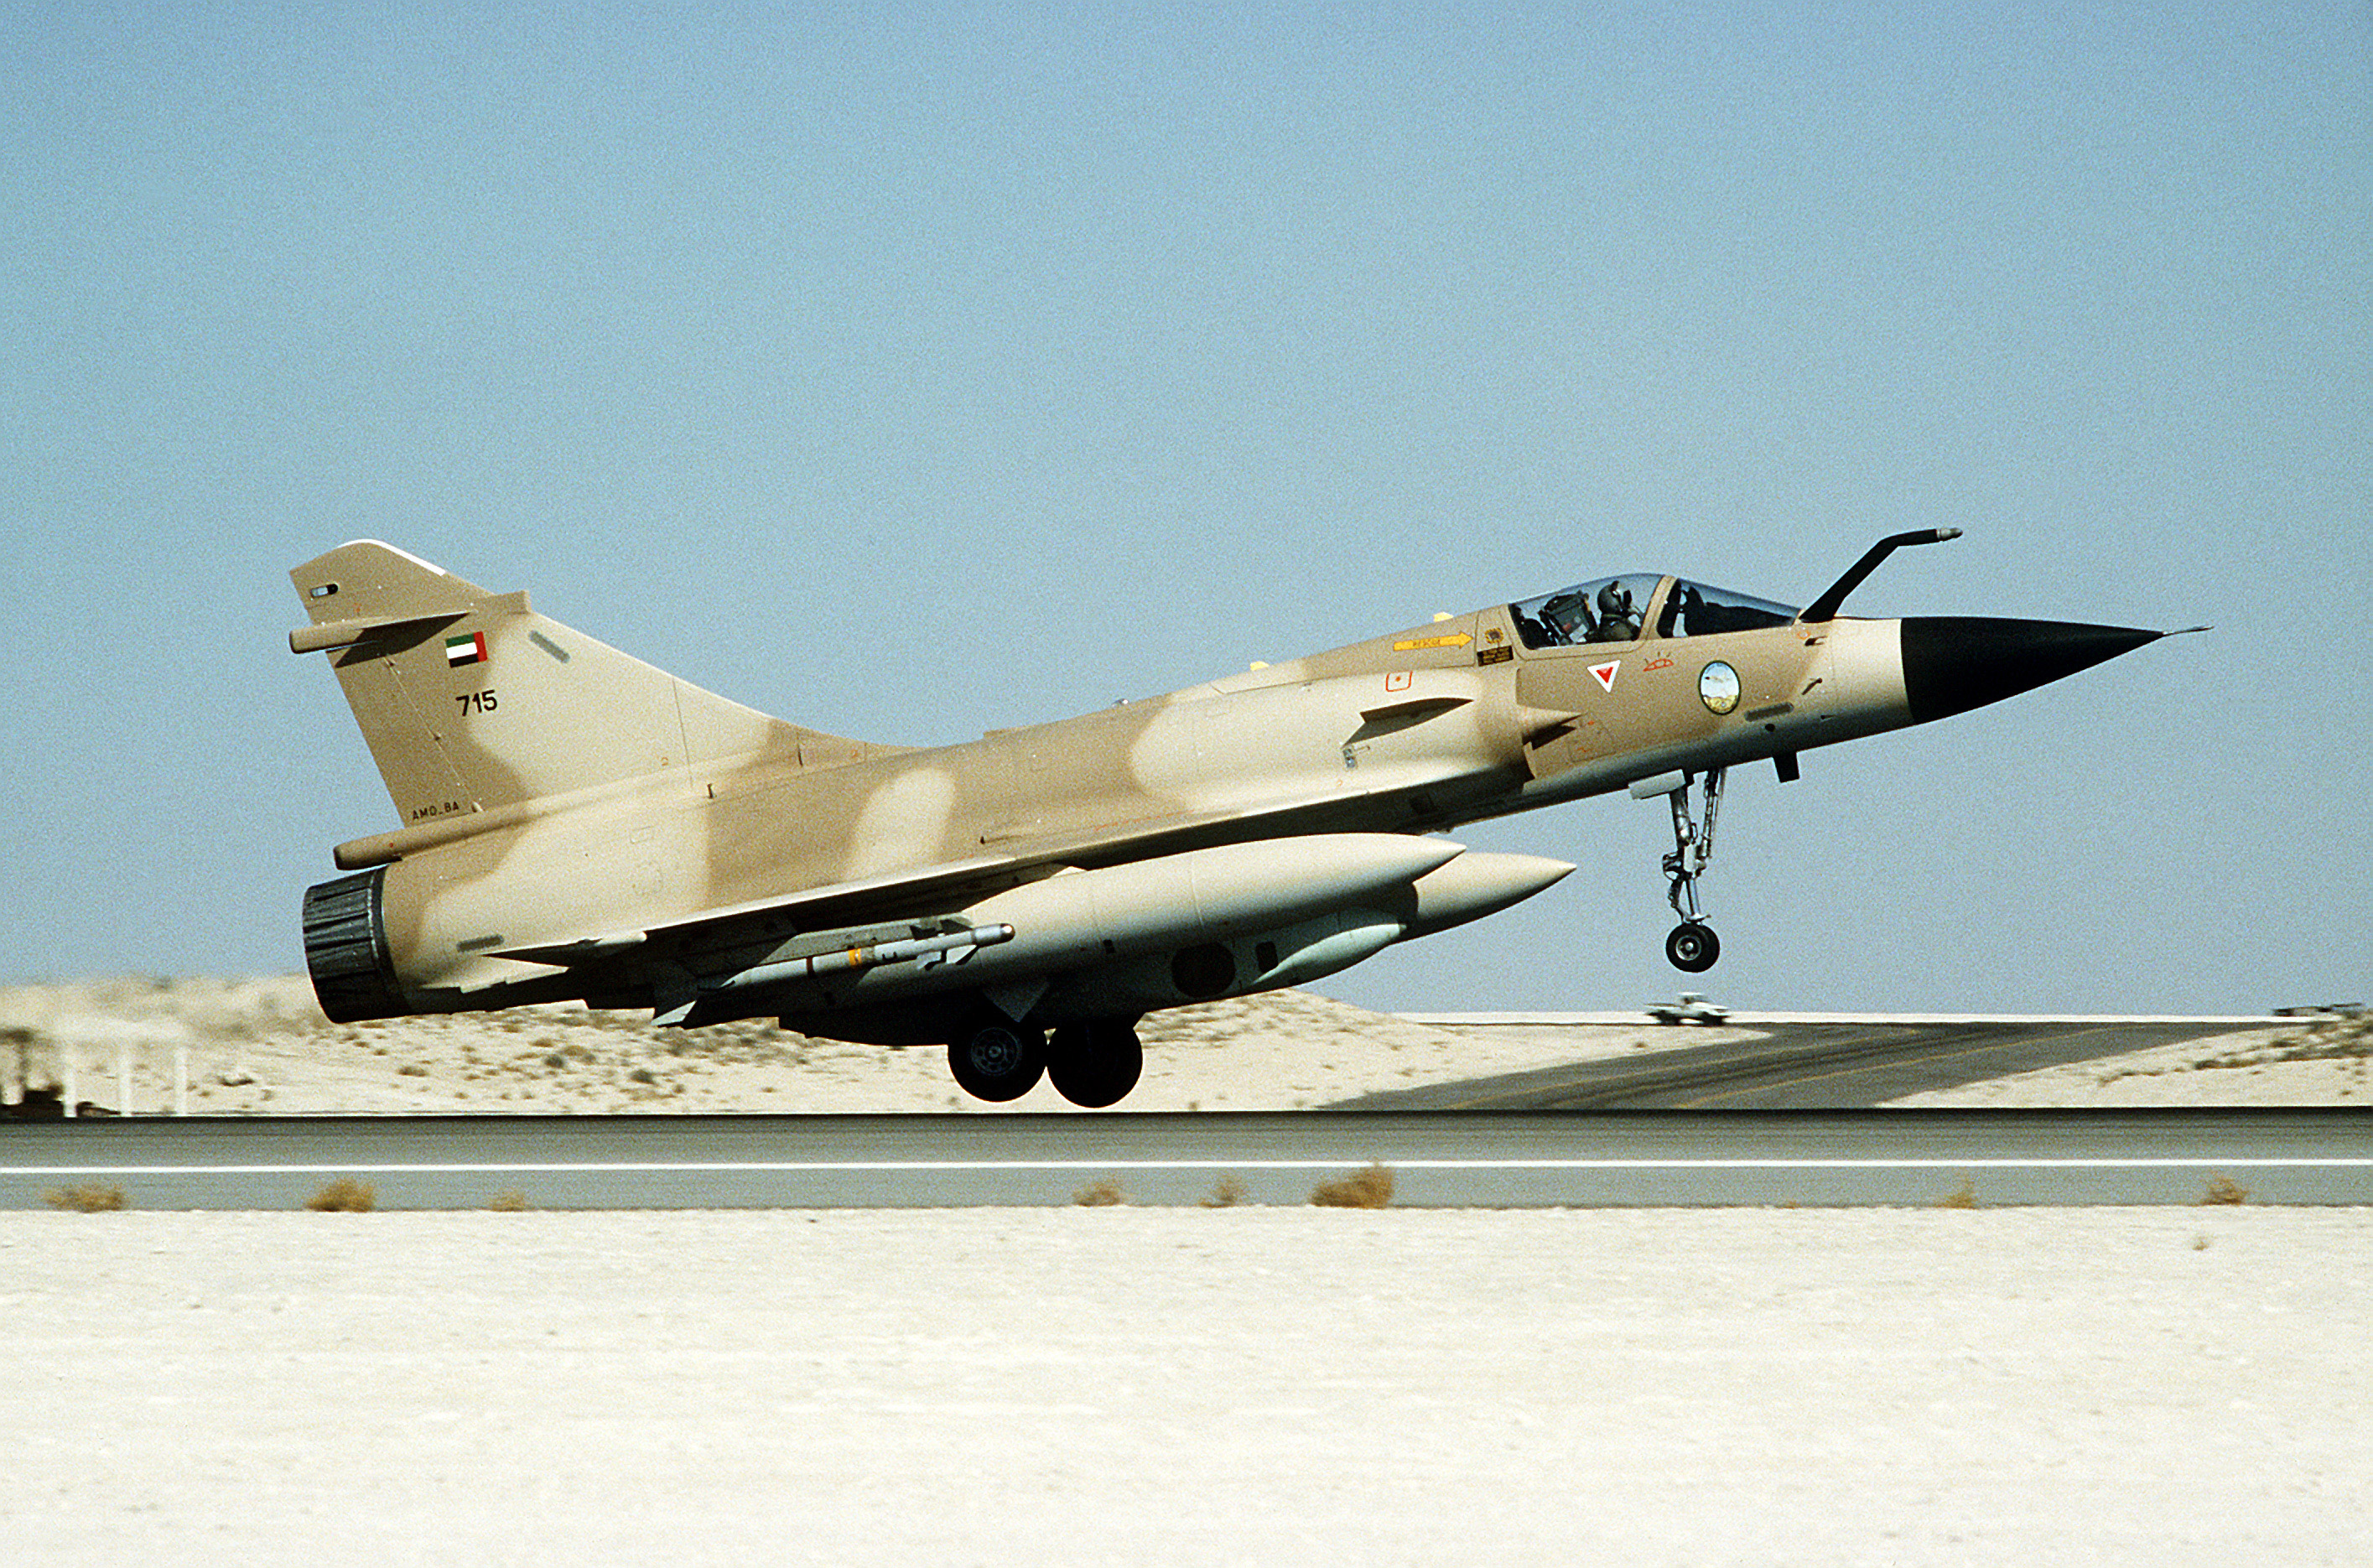 A Kuwaiti Mirage 2000C fighter aircraft during Operation Desert Storm